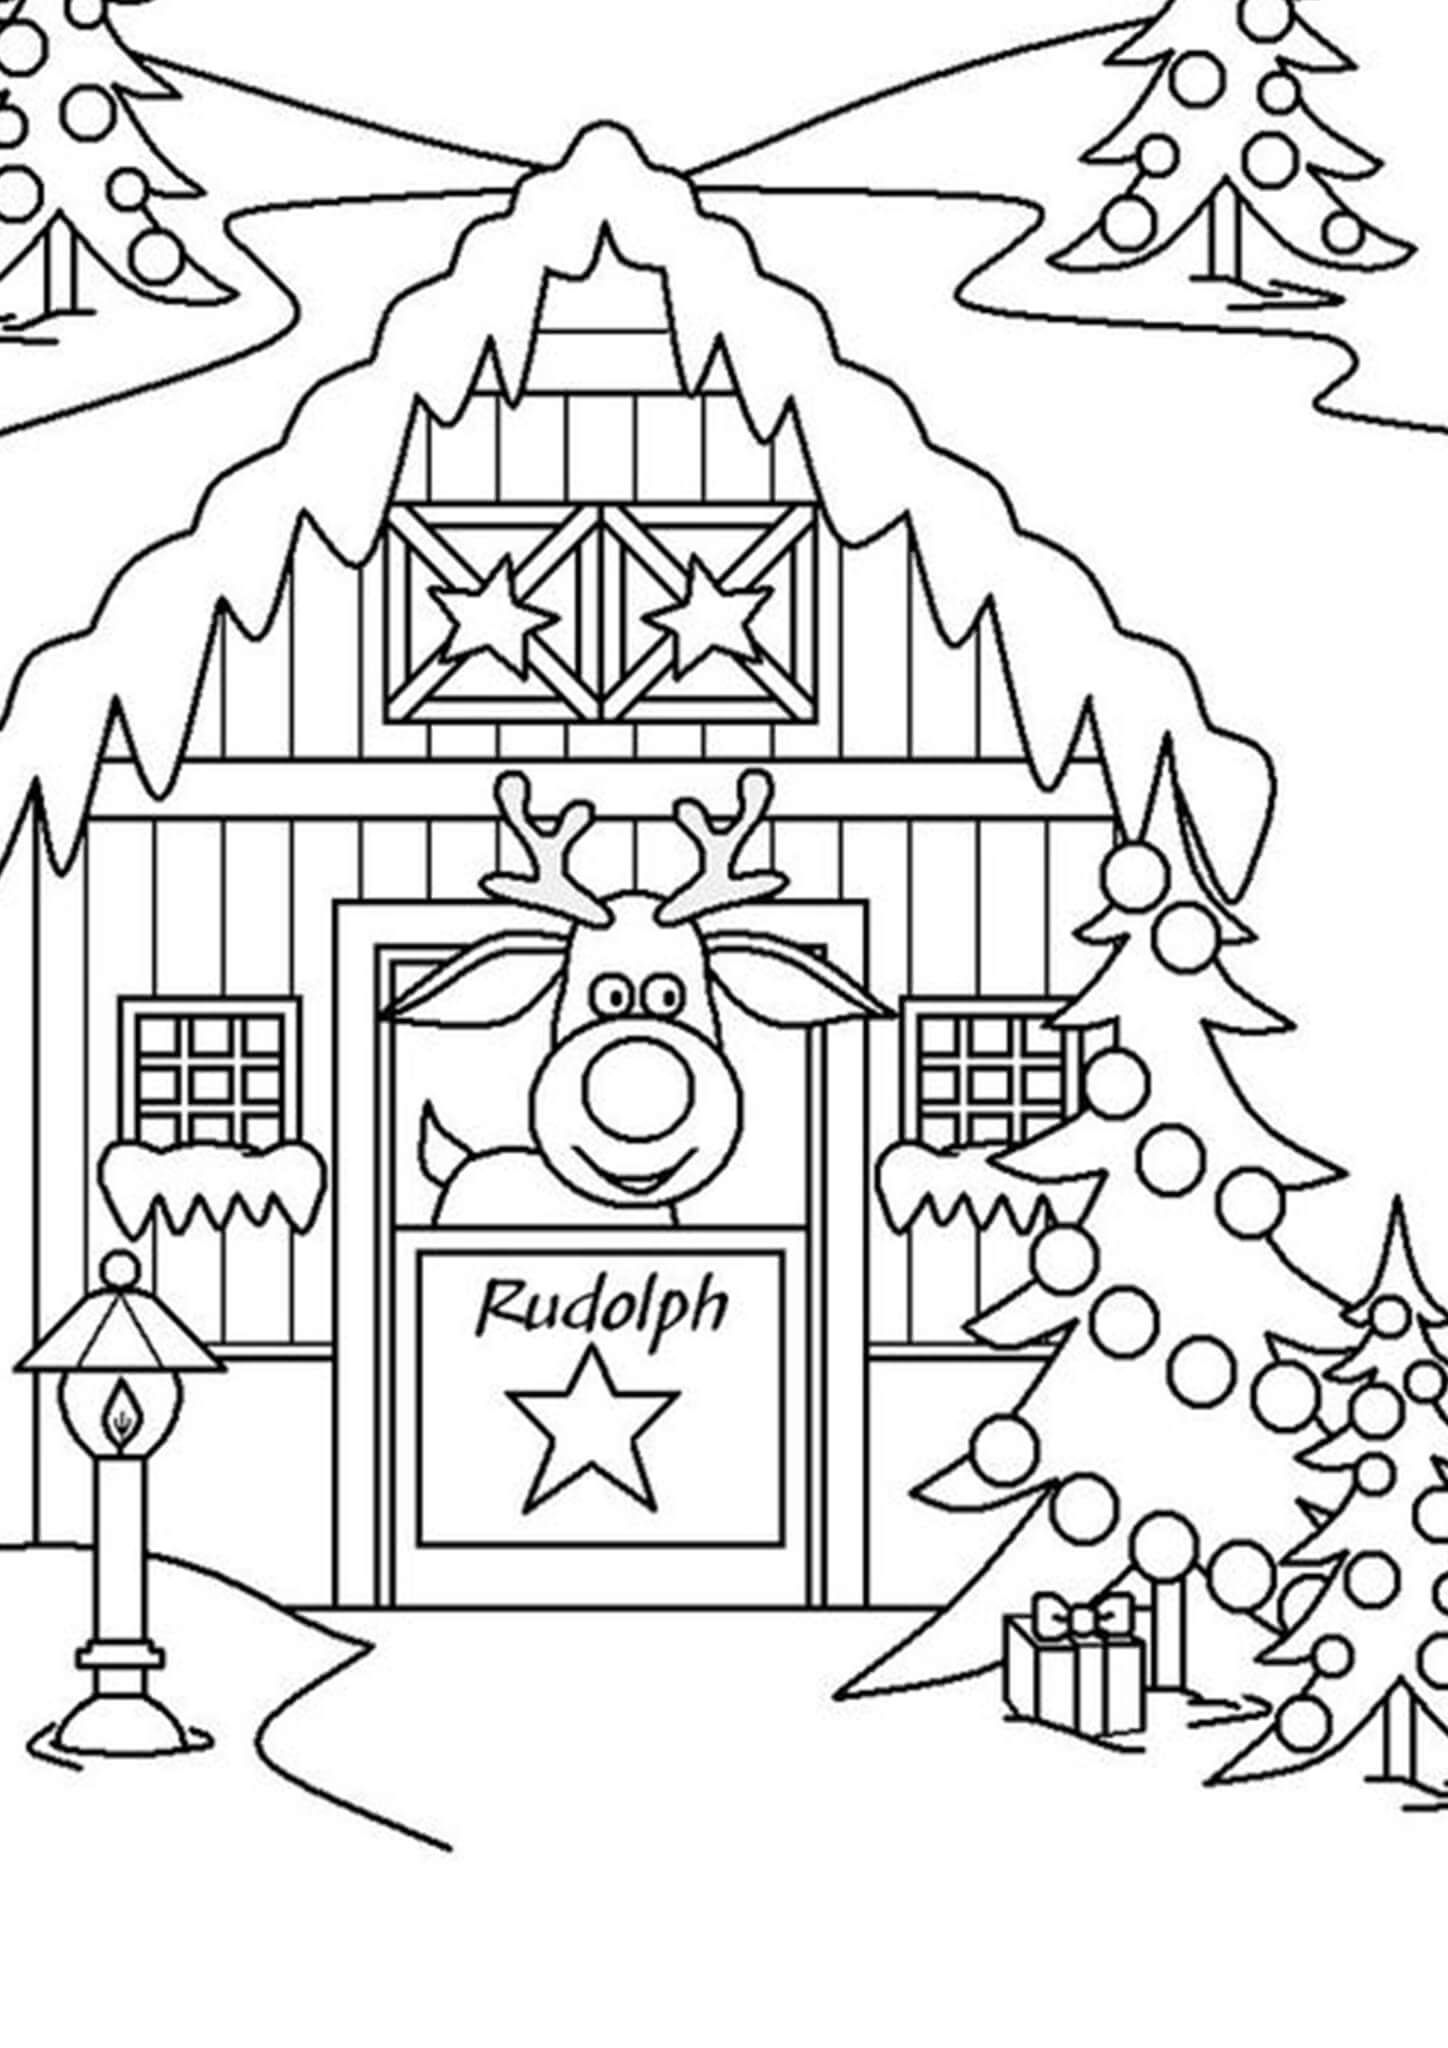 Rudolph The Red Nosed Reindeer Coloring Pages Printable Christmas Coloring Pages